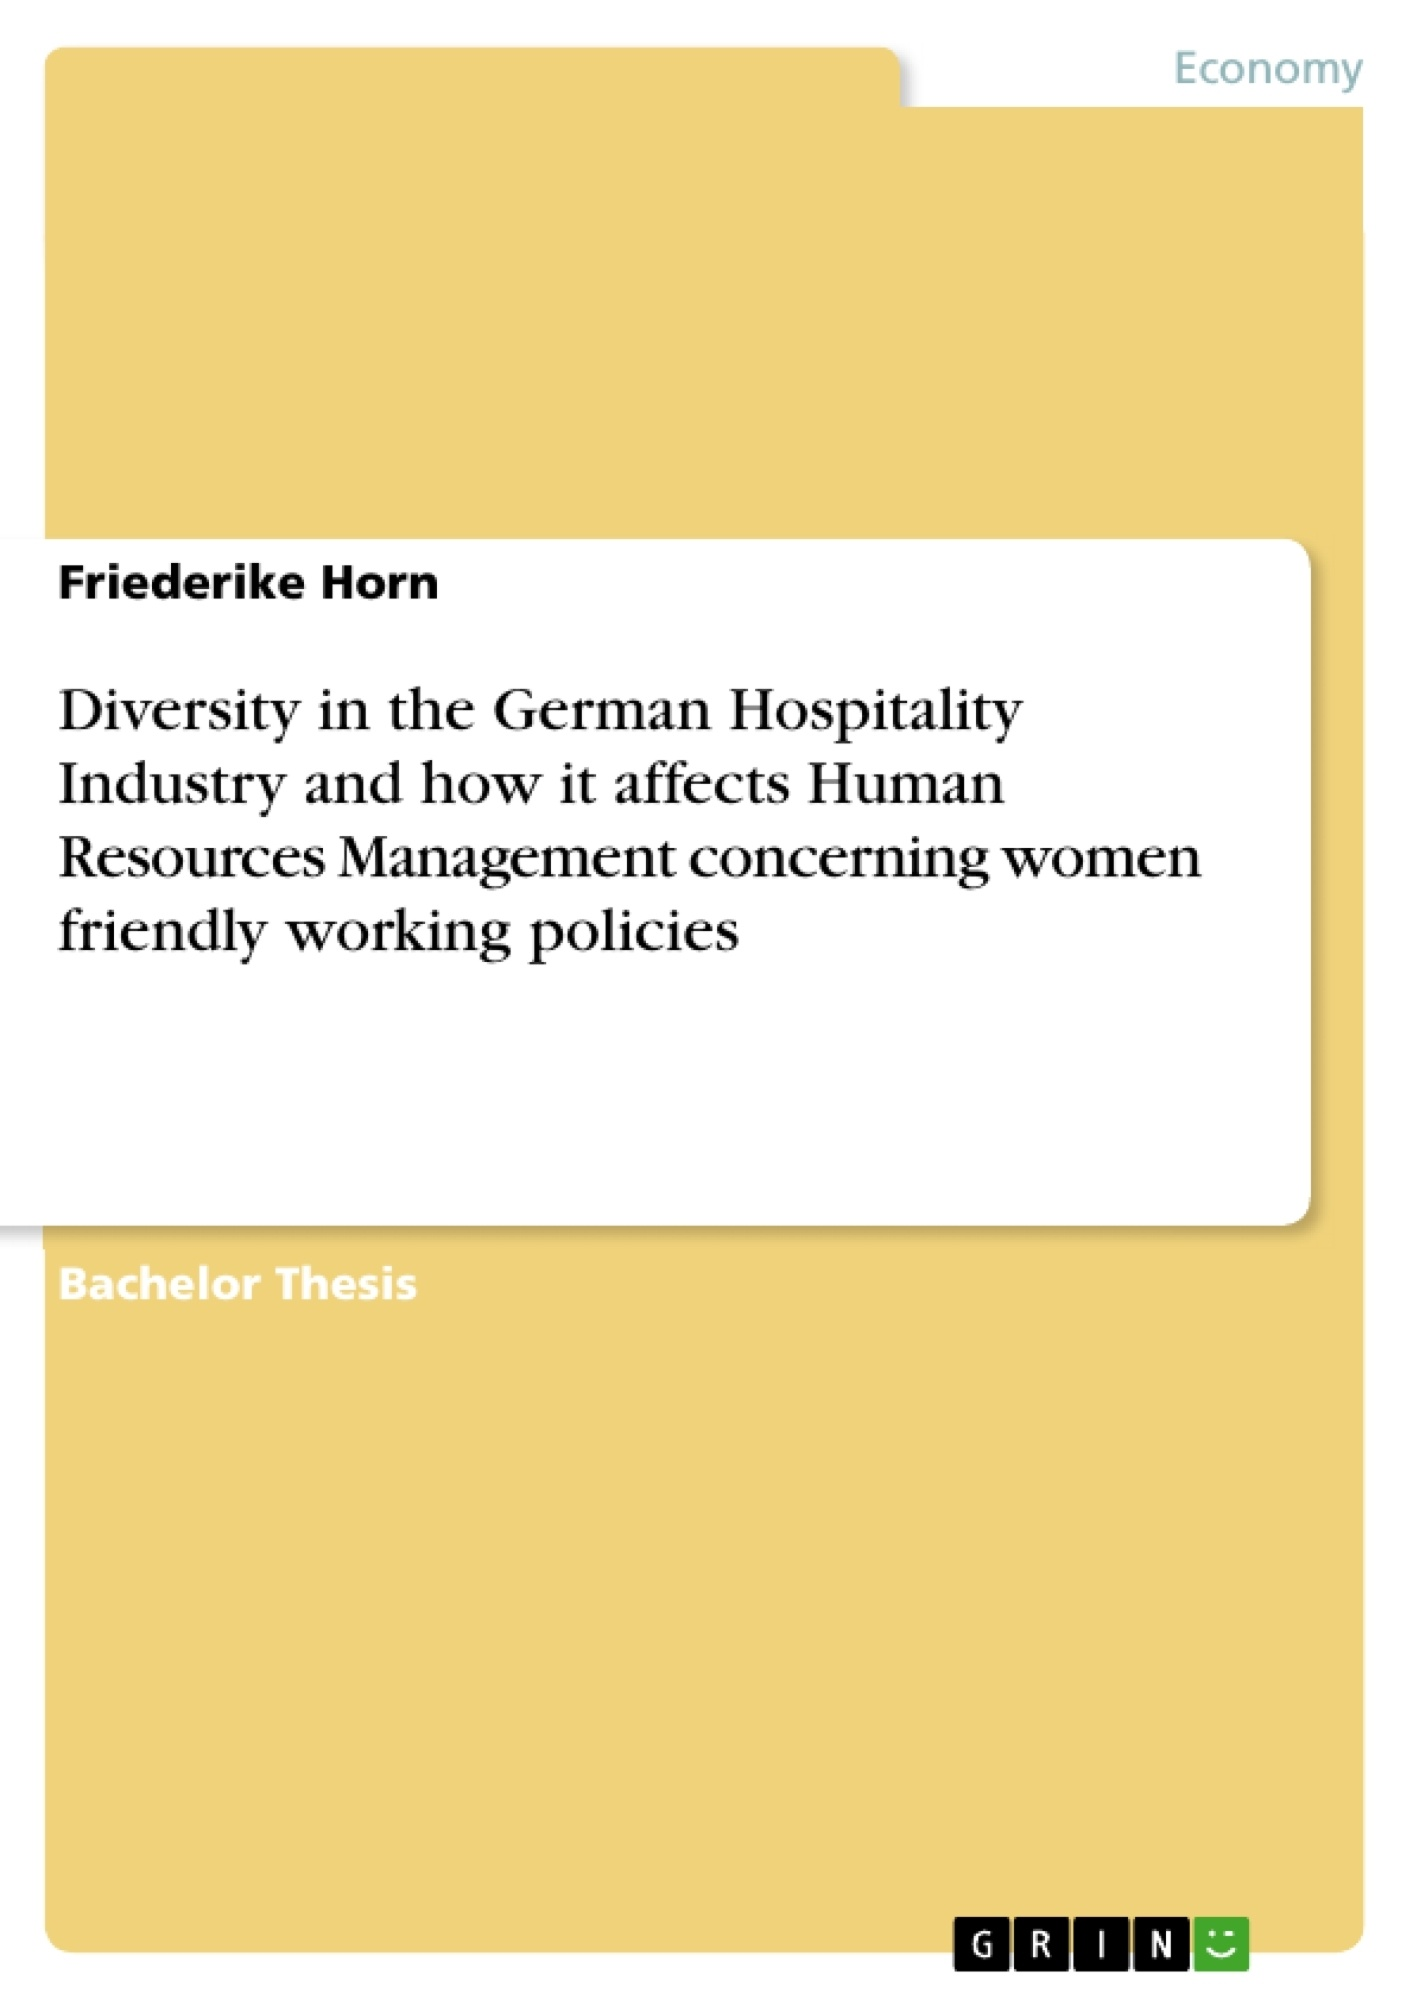 Title: Diversity in the German Hospitality Industry and how it affects Human Resources Management concerning women friendly working policies